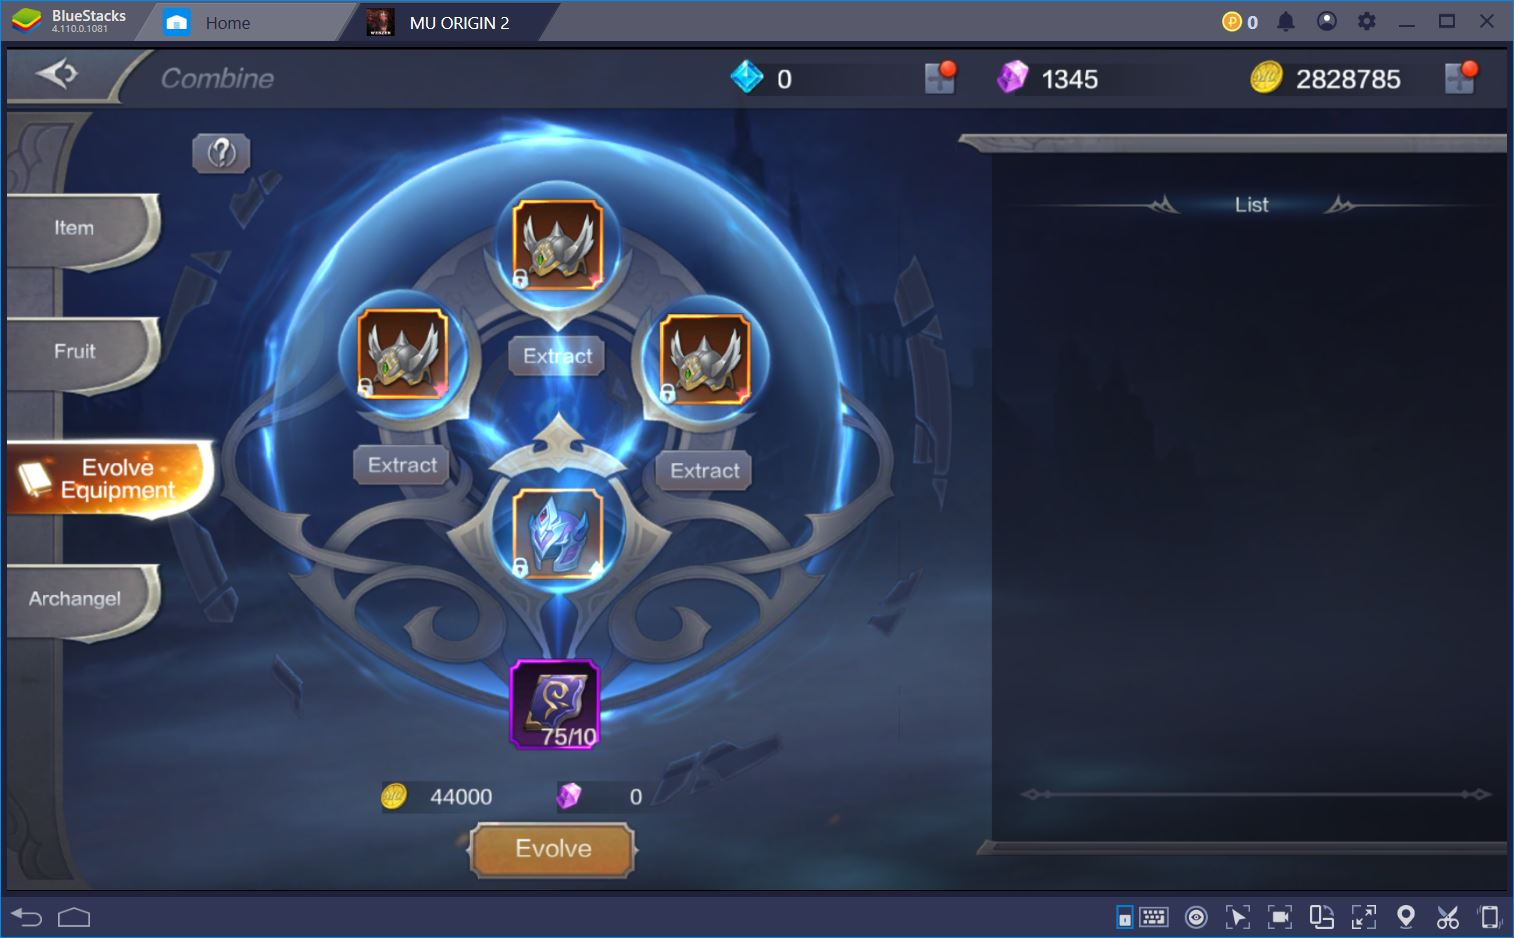 MU Origin 2 - How to Become a Beast in the Arena